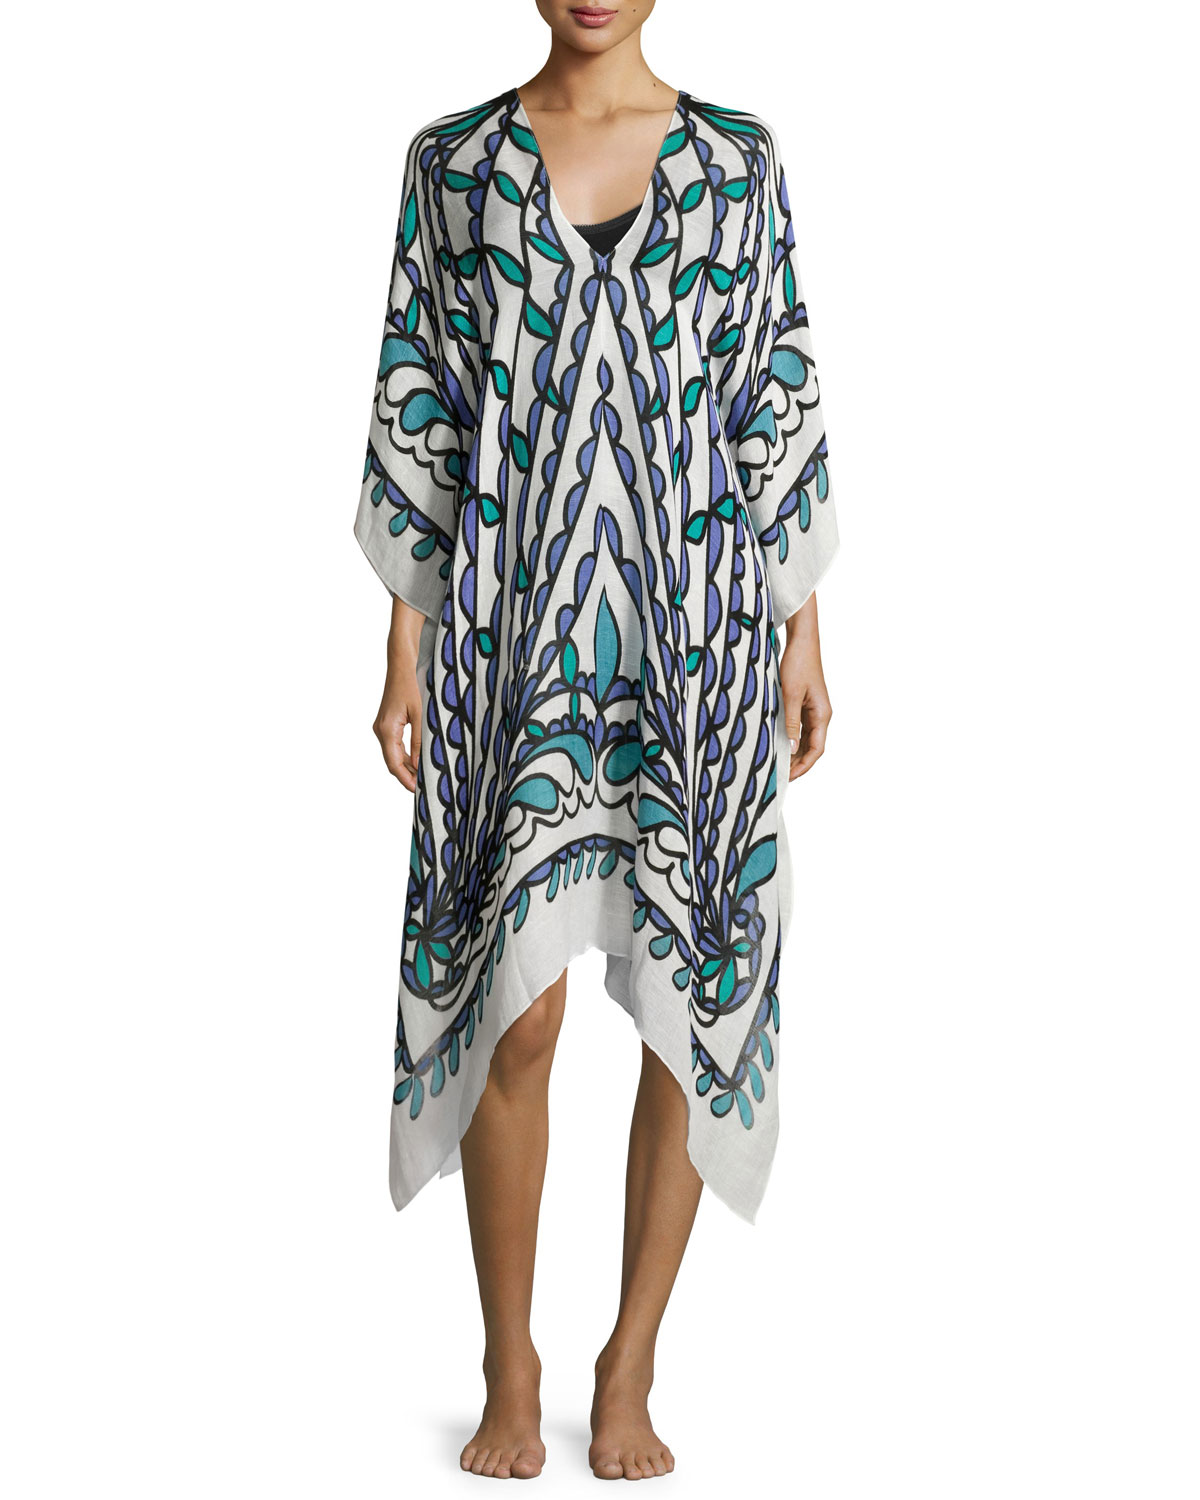 Papillon Printed Linen-Blend Caftan, Blue/Green, White Multi - Theodora & Callum